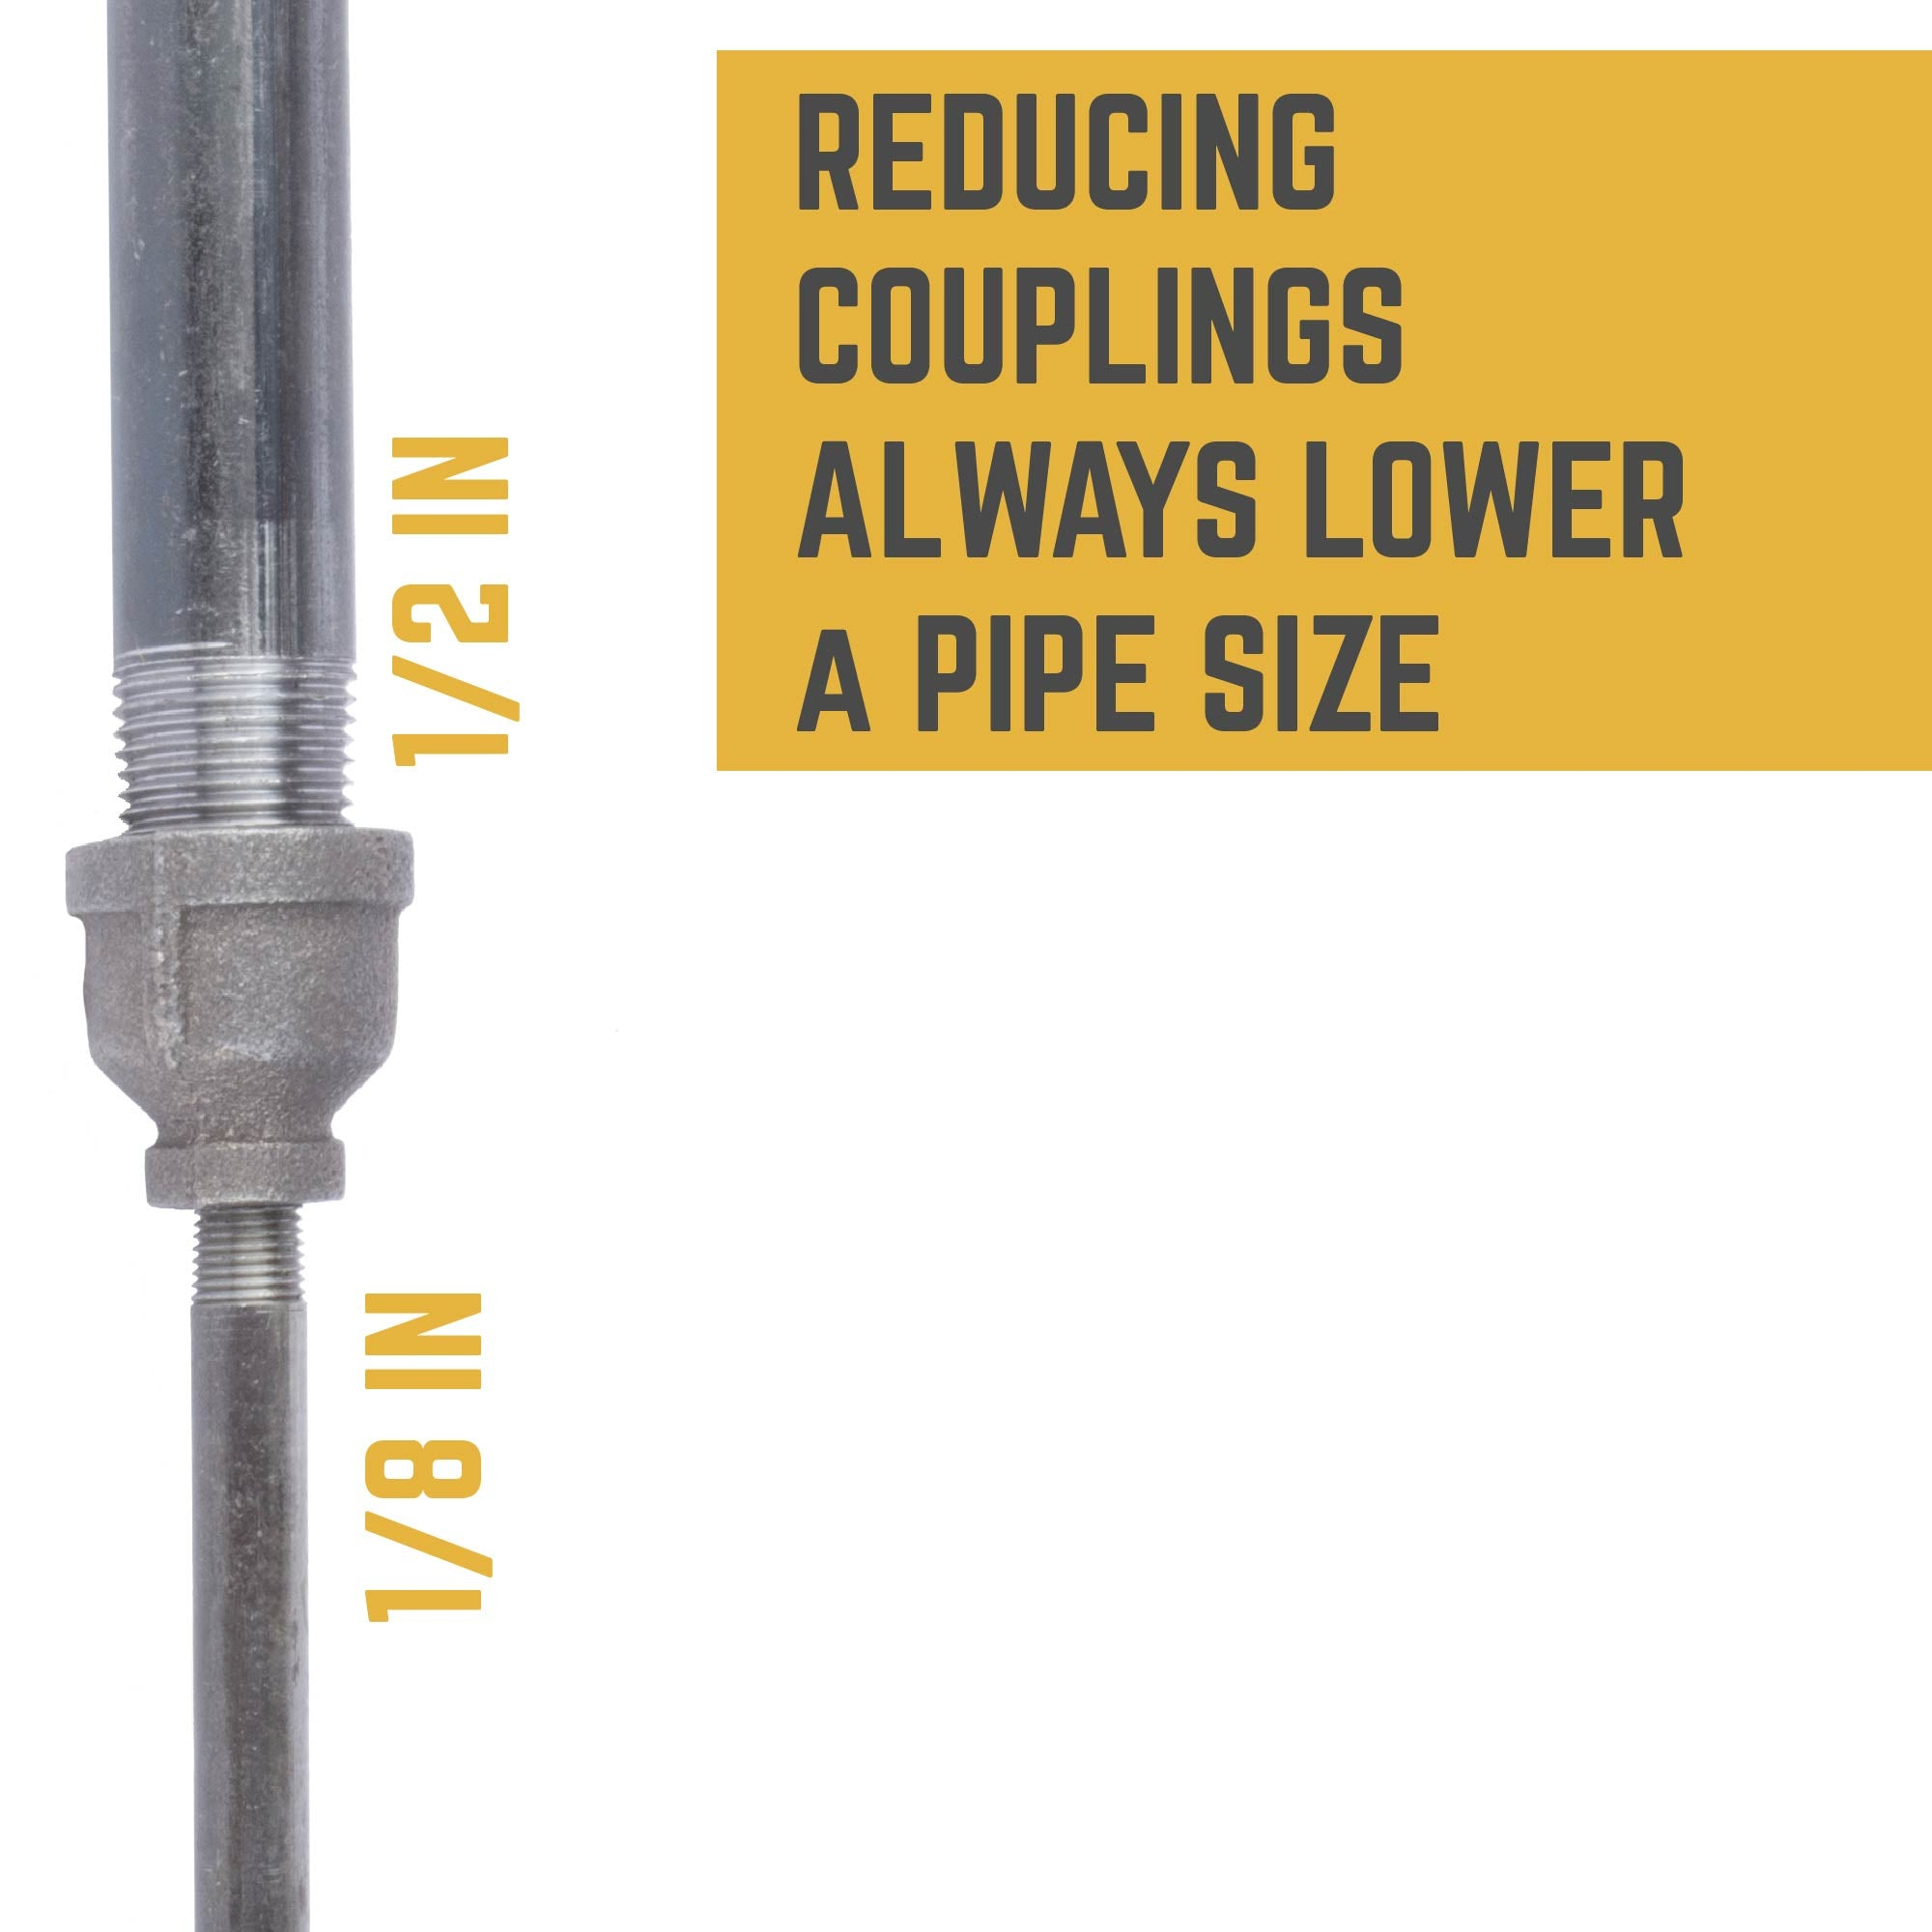 1/2 IN X 1/8 IN REDUCING COUPLING